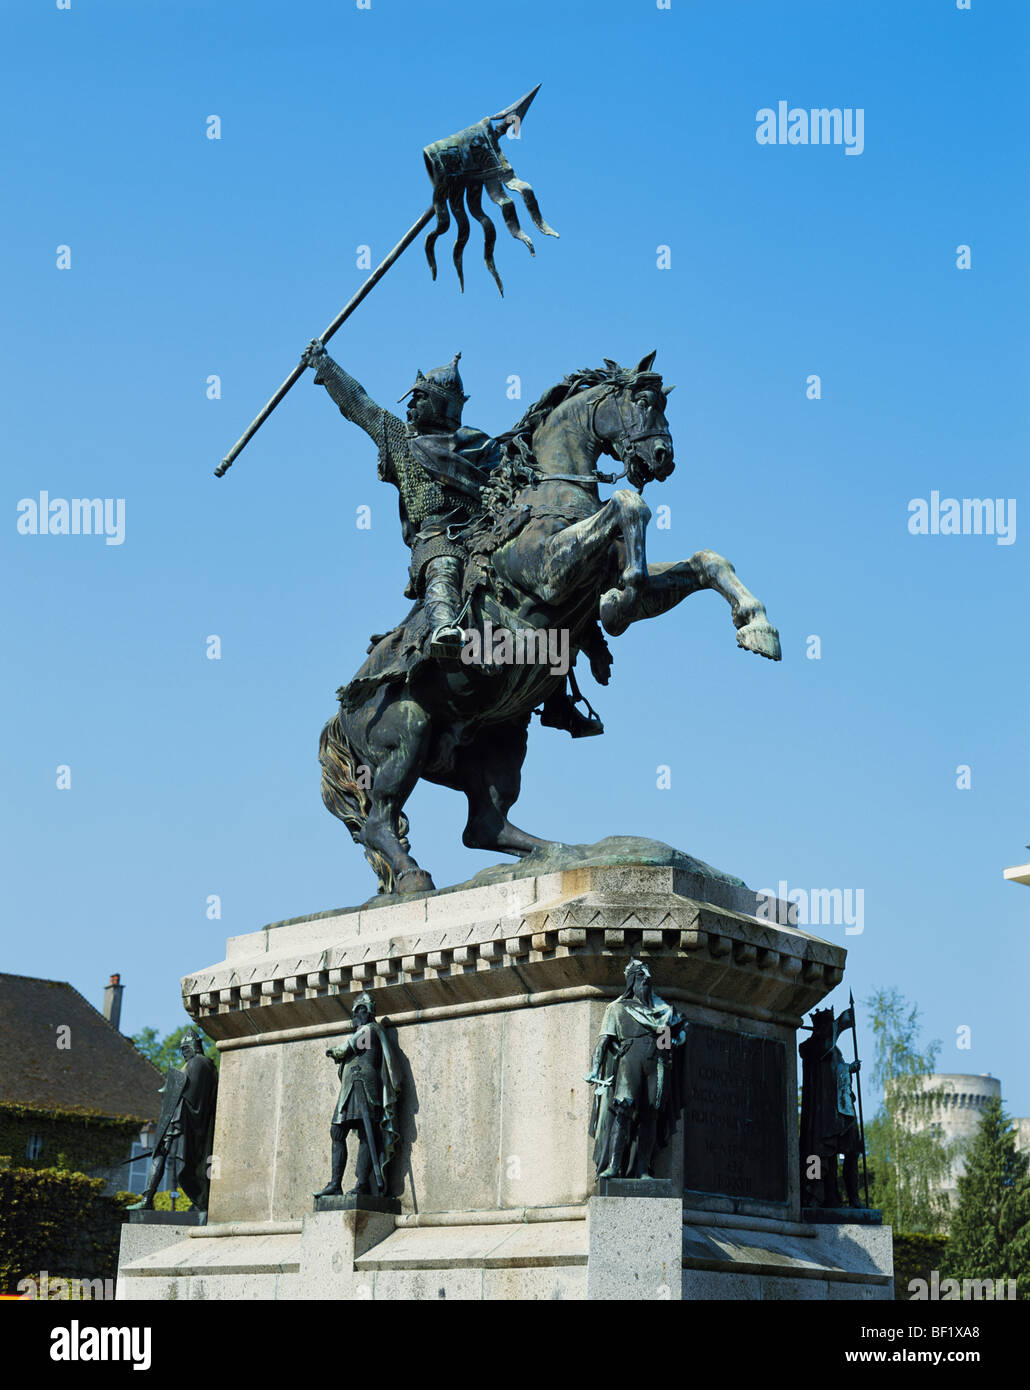 William the Conqueror Statue, Falaise, Normandy, France - Stock Image